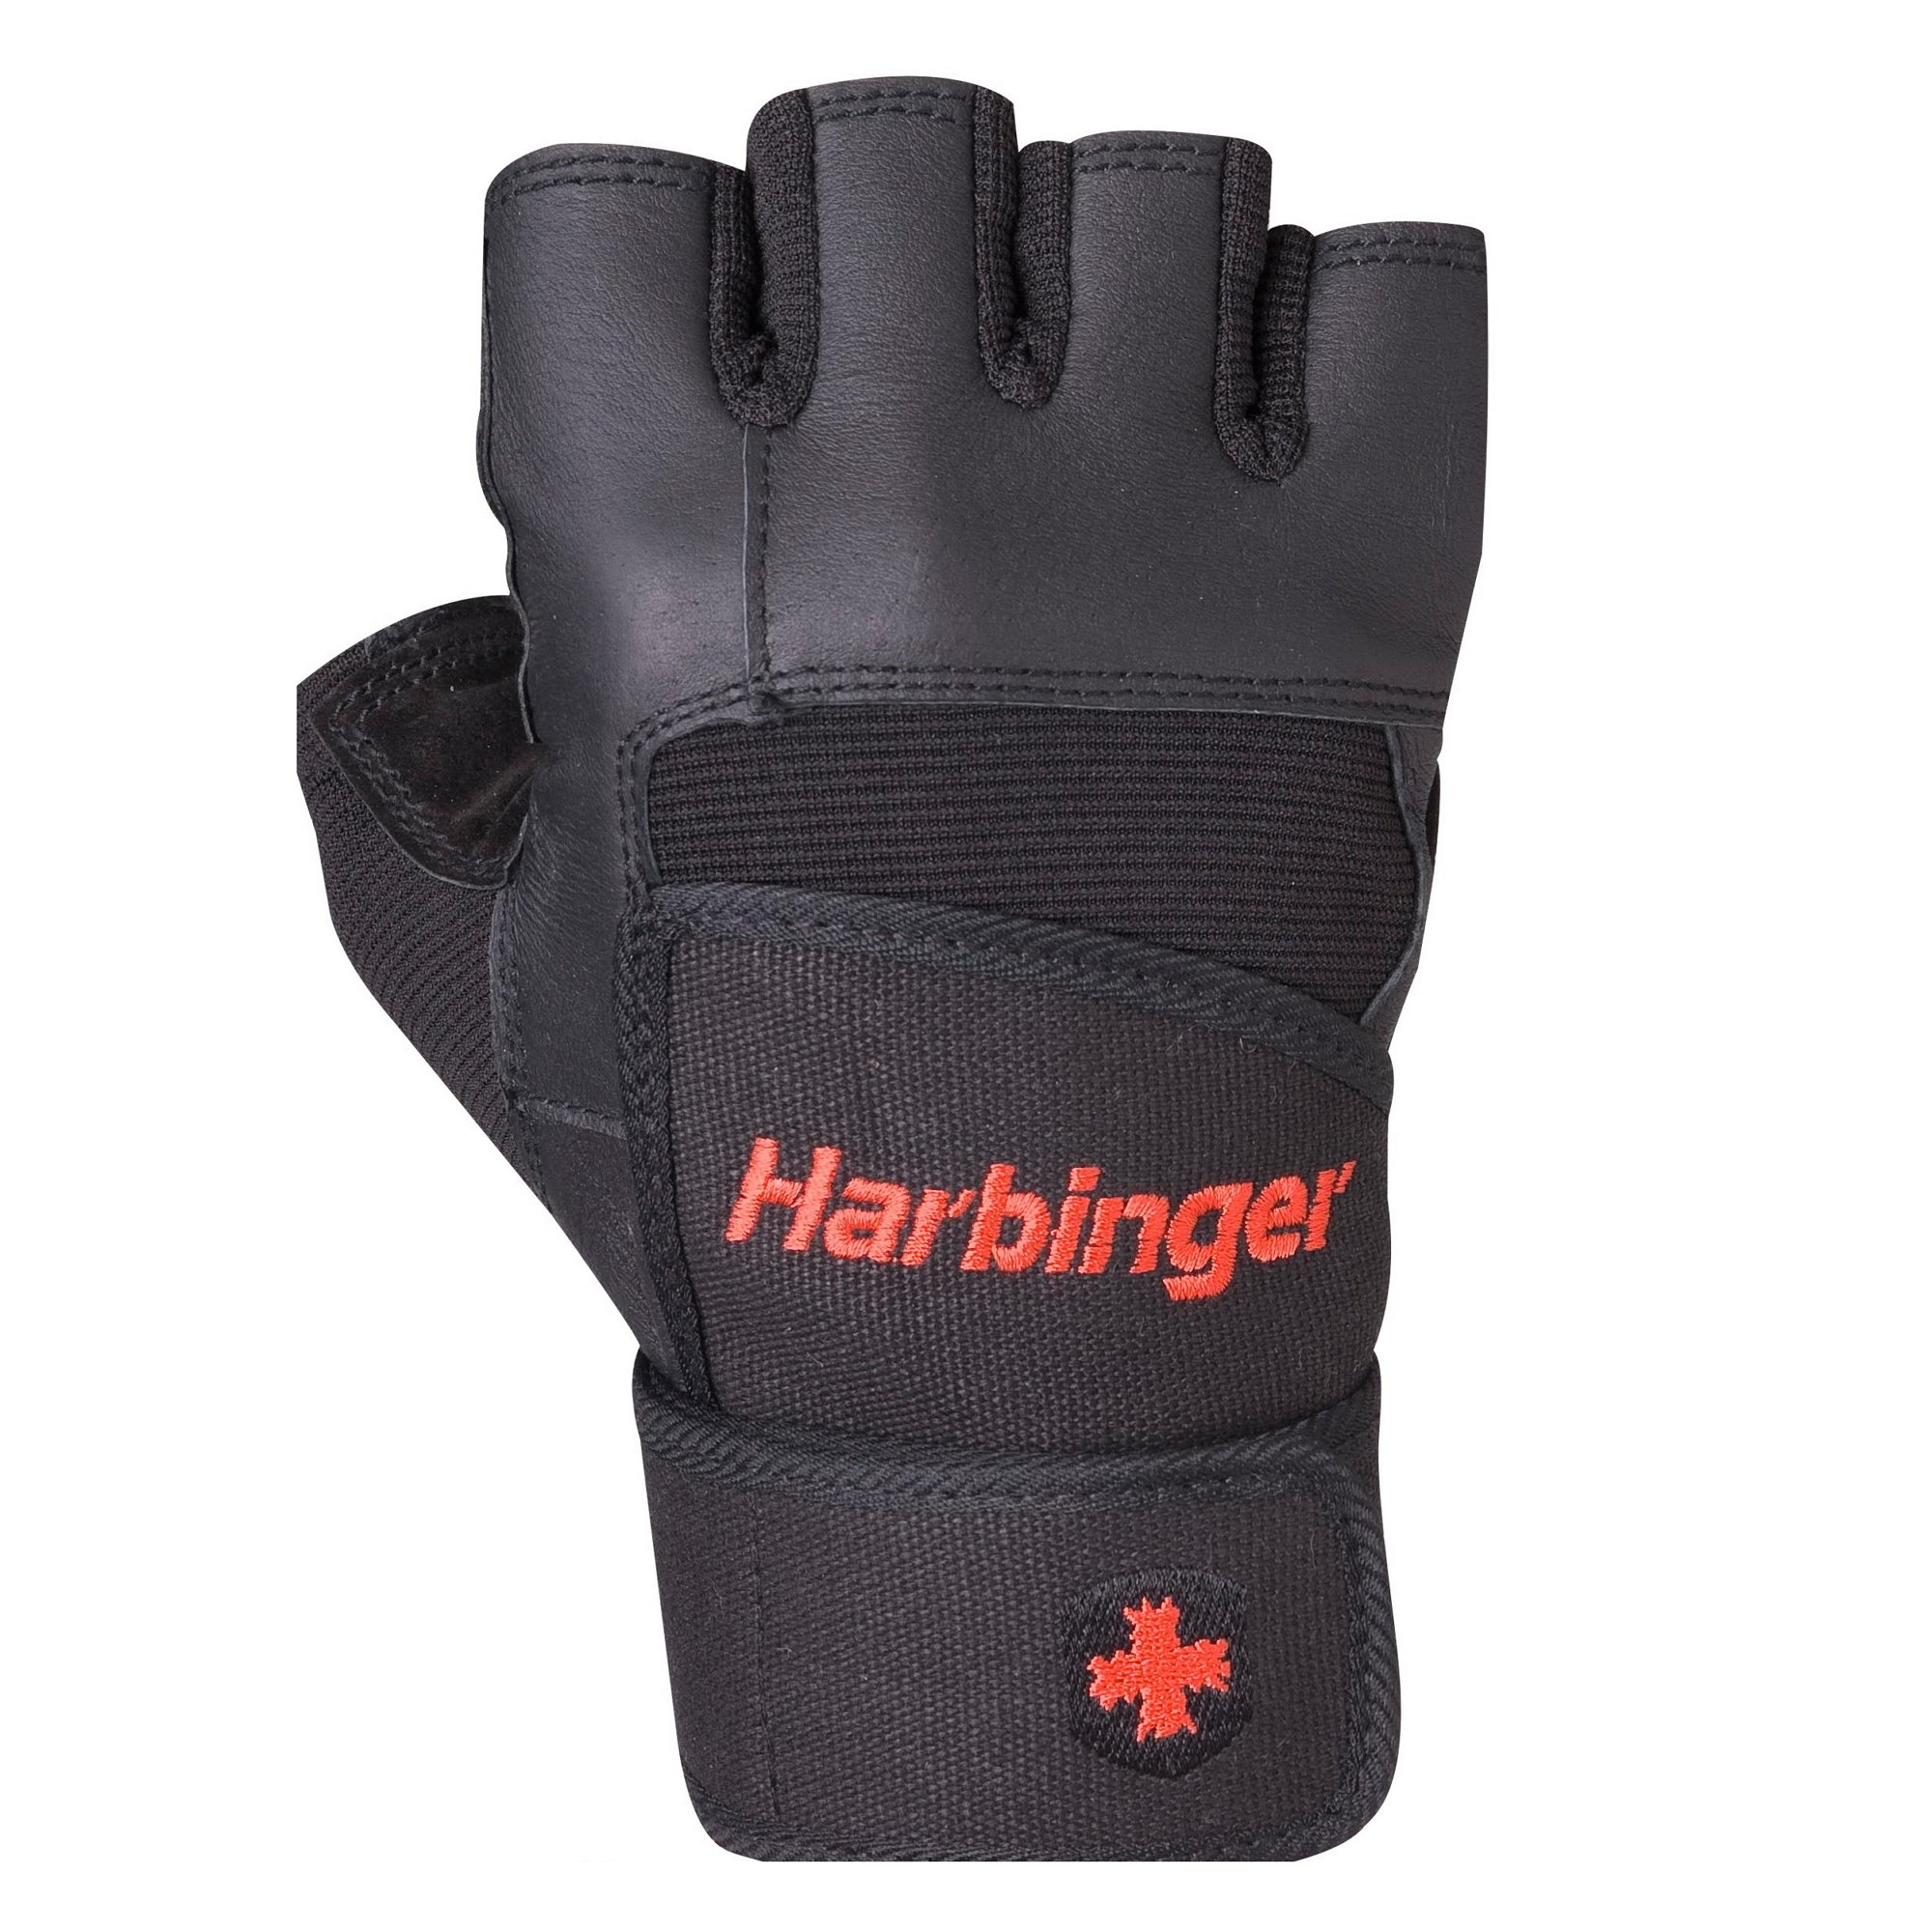 Harbinger Pro Wristwrap Weightlifting Gloves with Vented Cushioned Leather Palm (Old Style), Medium